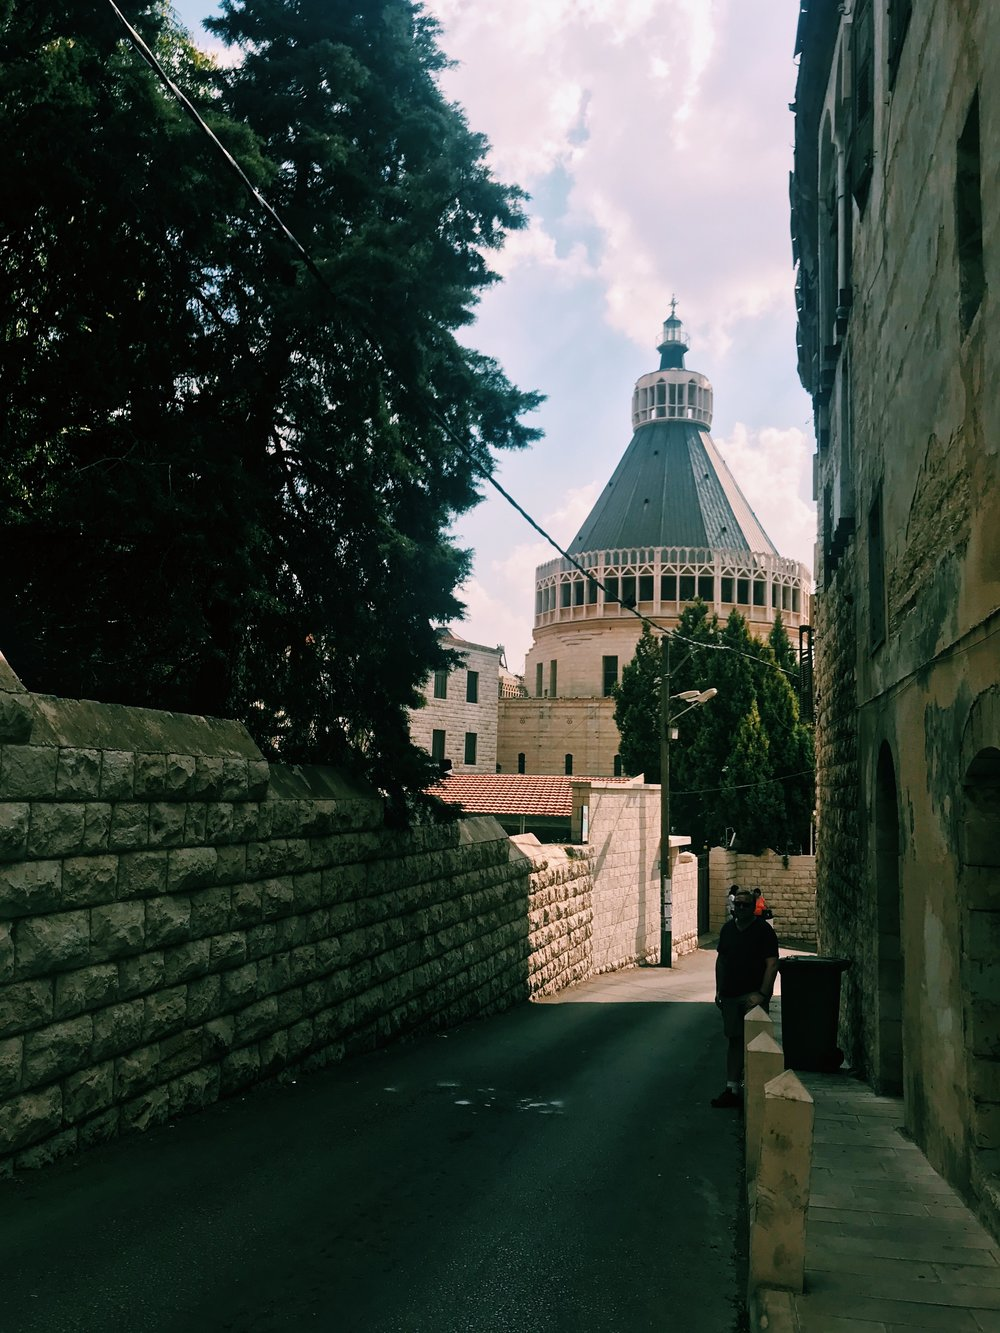 Basilica of the Annunciation  /// Nazareth's most prominent landmark marks the traditional location of Mary's house where she was visited by the angel Gabriel to receive the news of her divine pregnancy